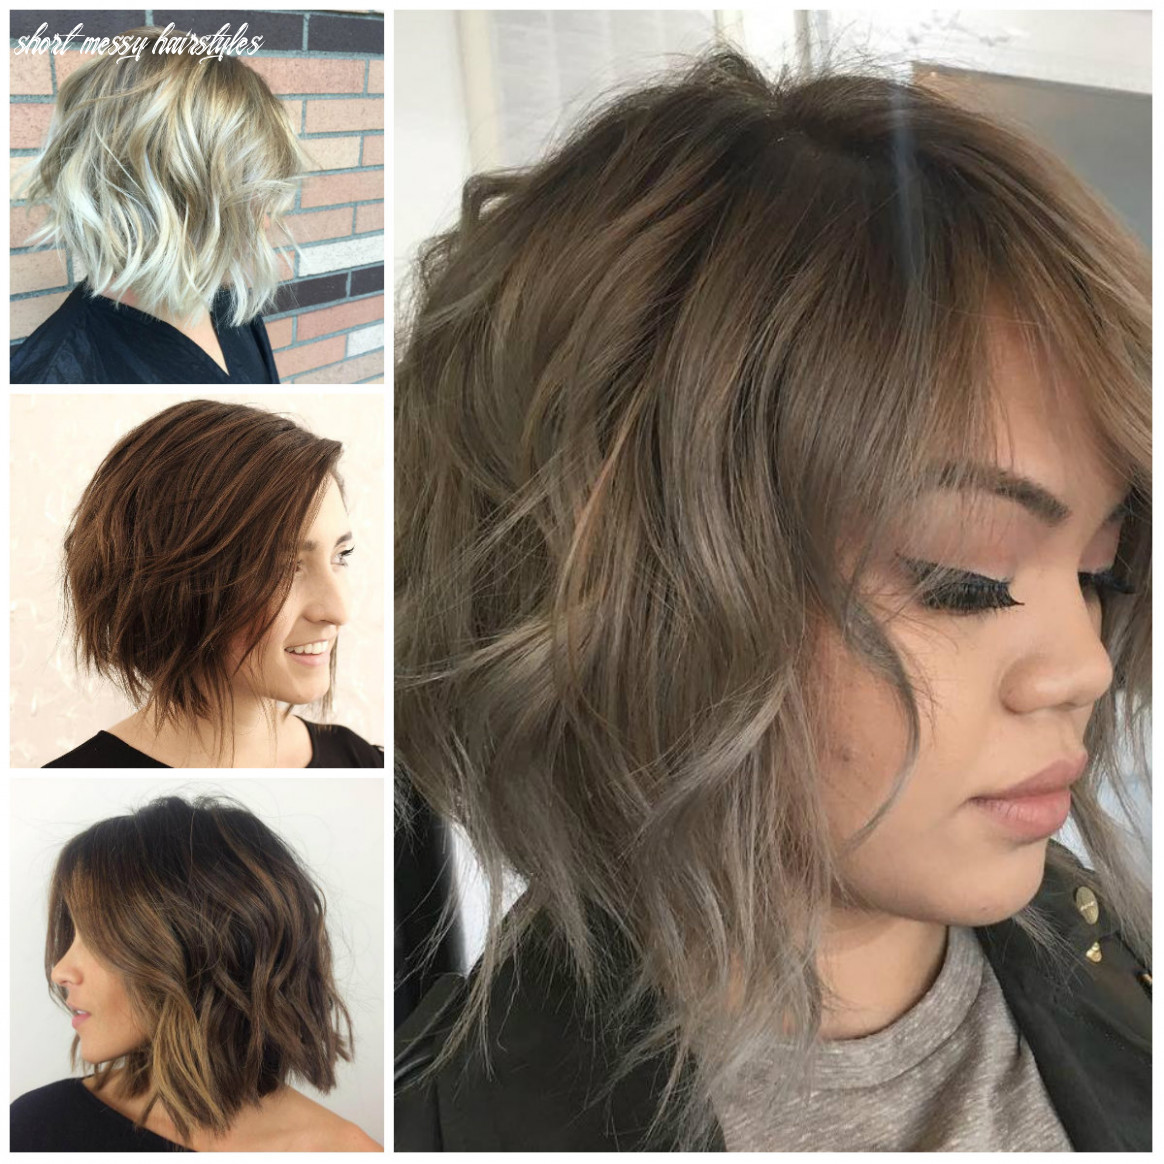 Casual short messy hairstyles for females | 11 haircuts